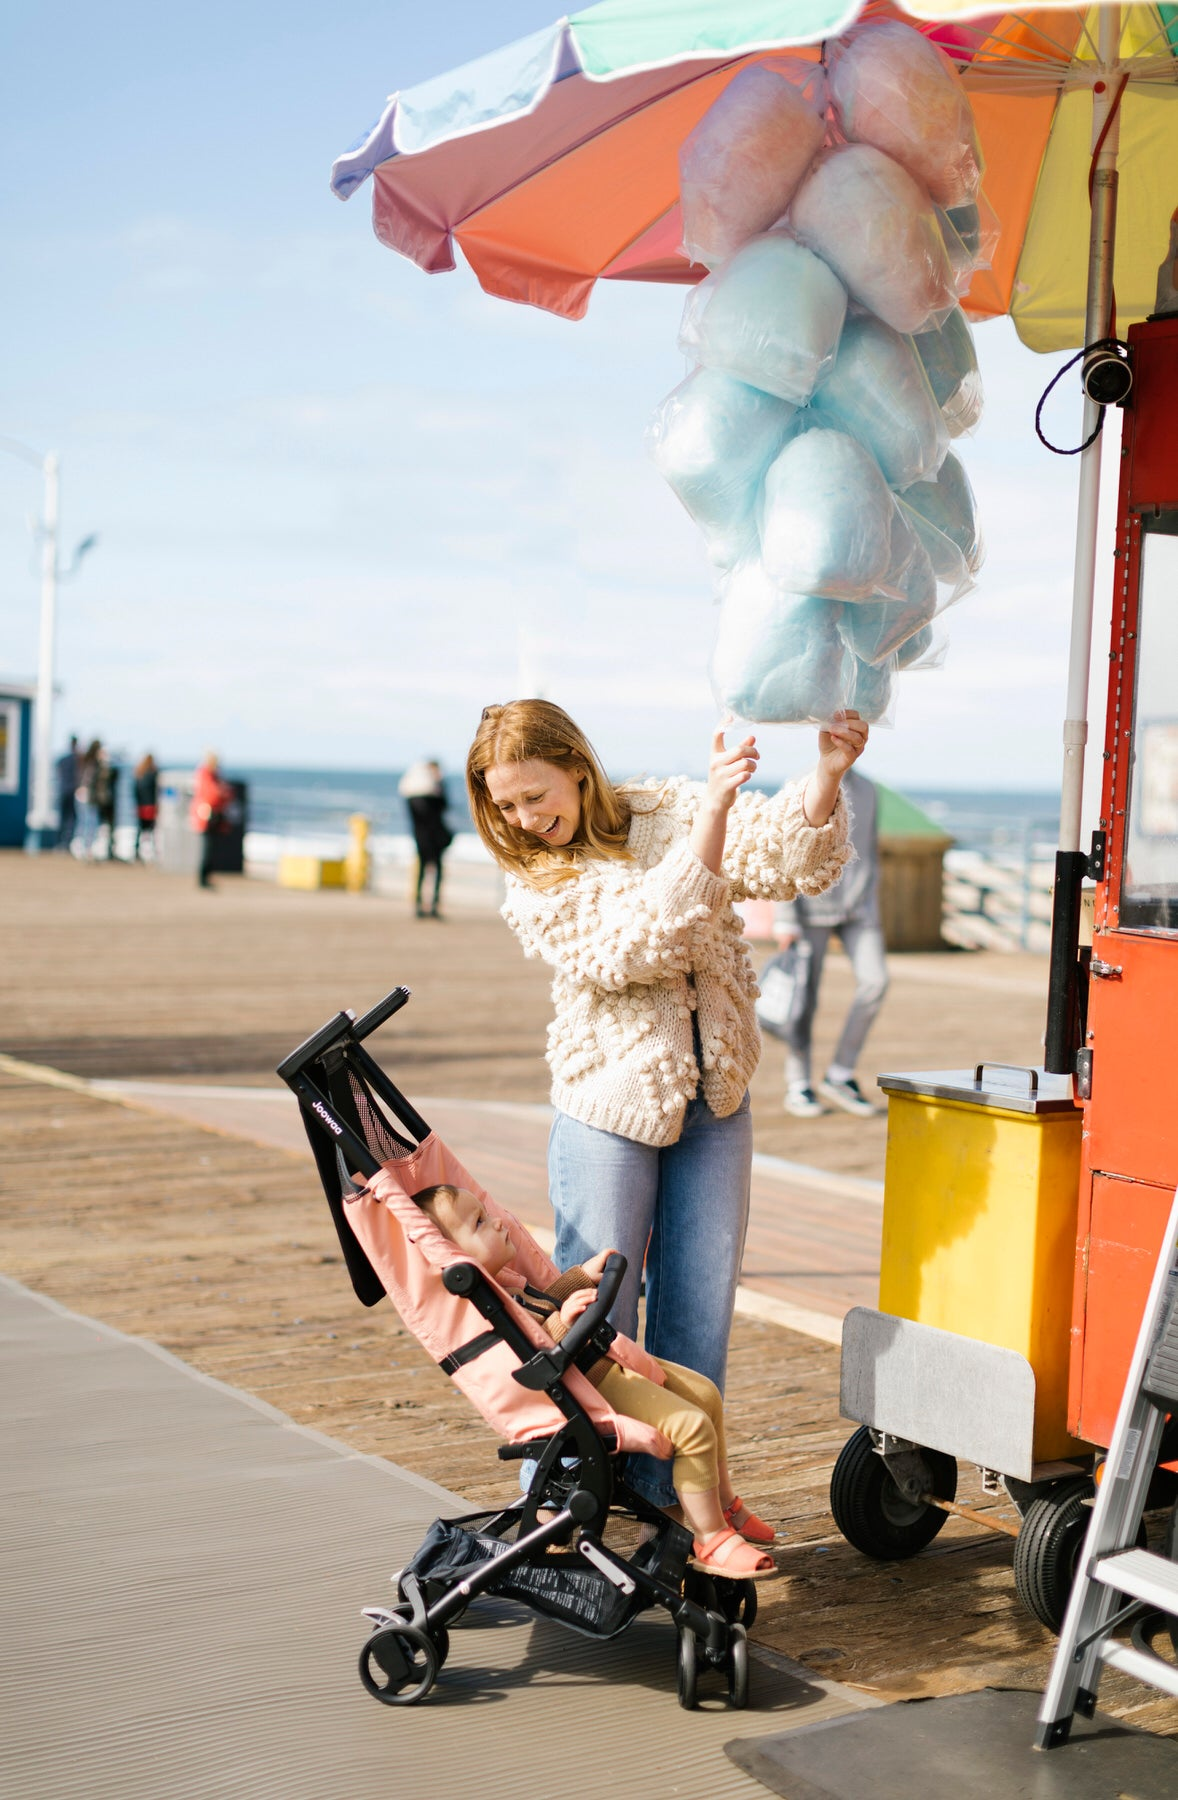 Hannah, picking out cotton candy, at Malibu Pier